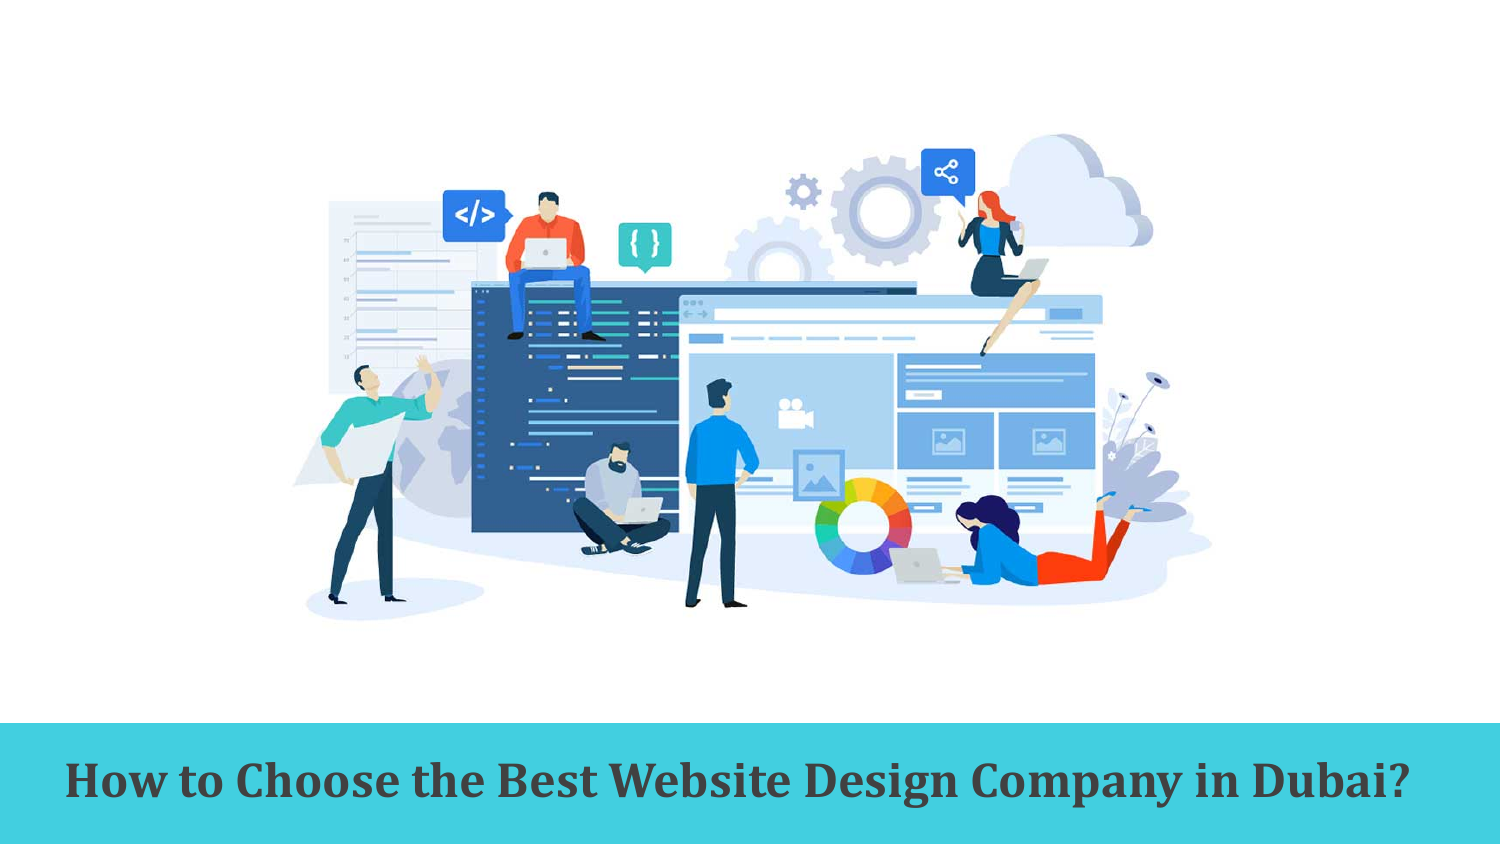 5 Tips To Find The Best Website Design Company In Dubai